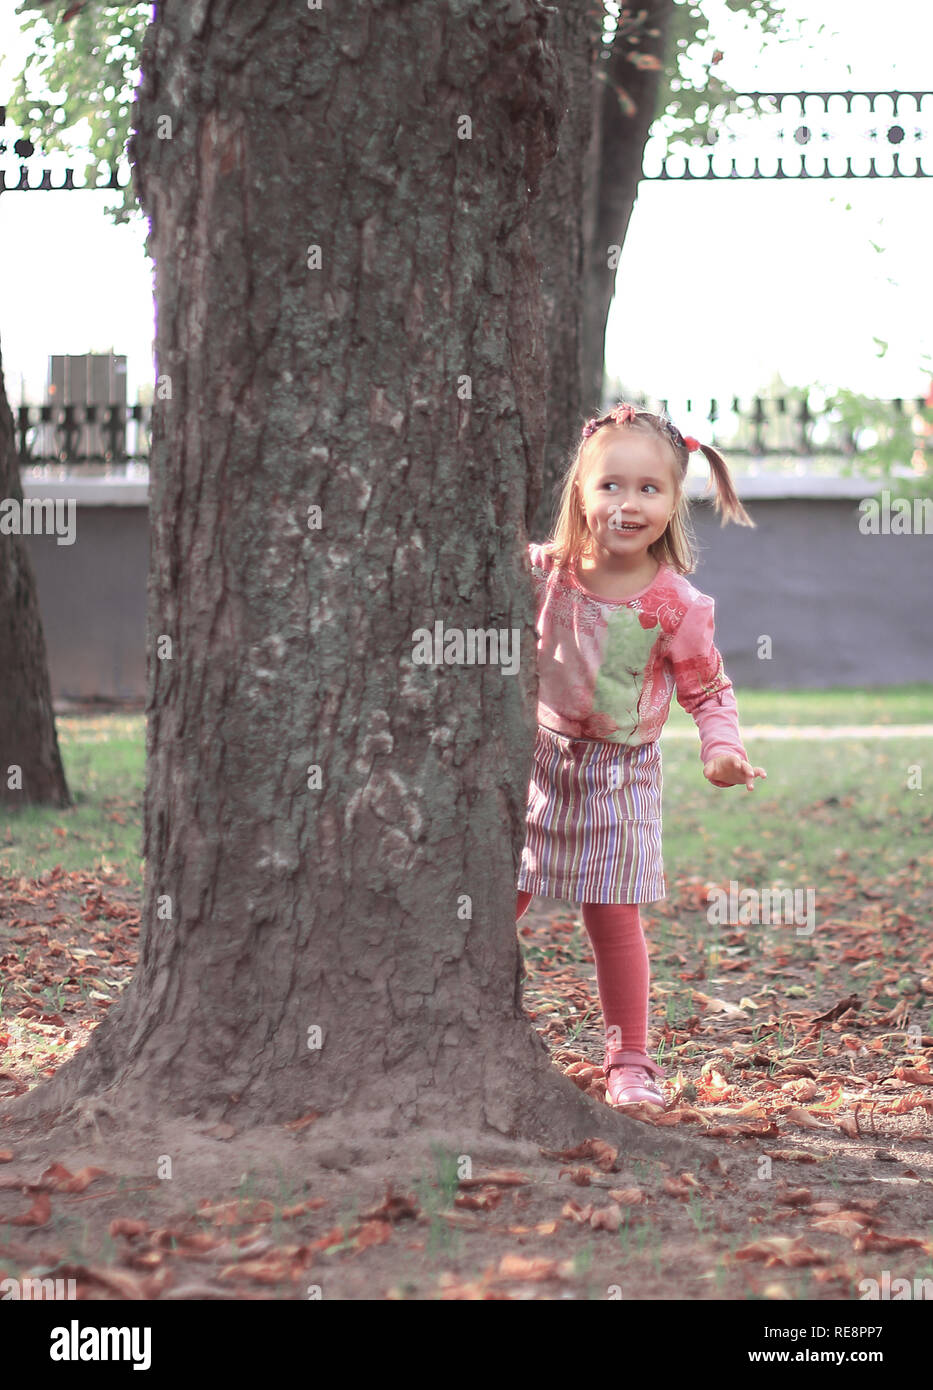 happy little girl playing hide and seek in the city Park - Stock Image